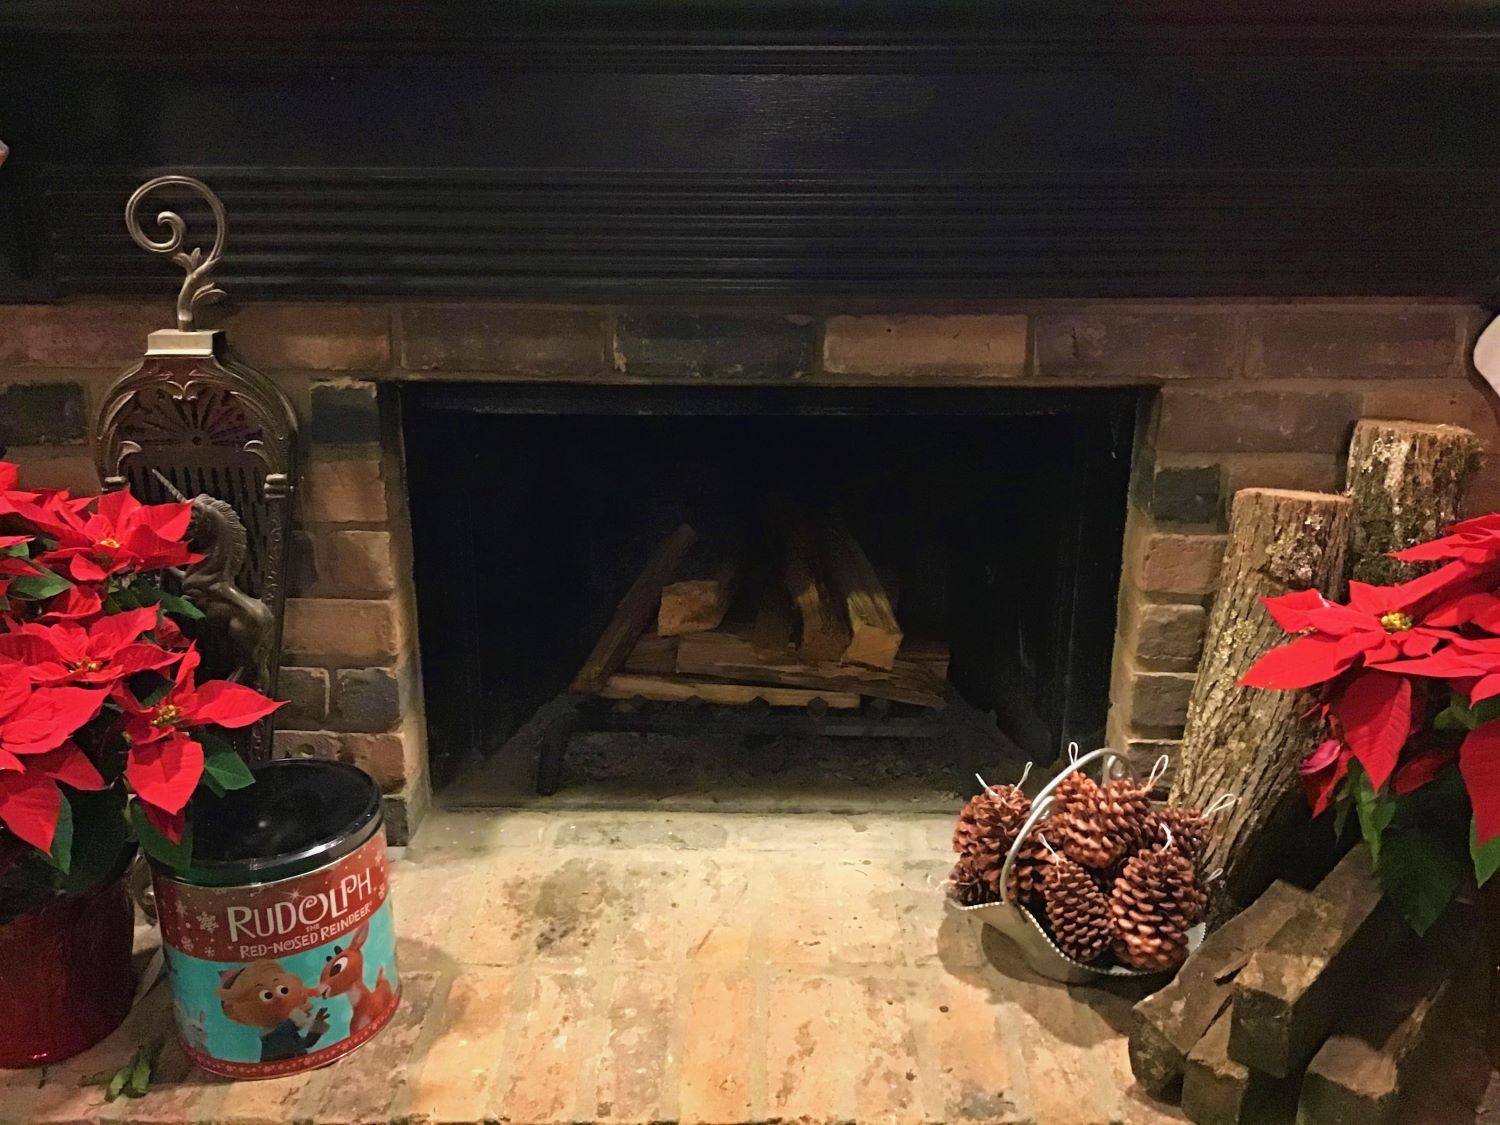 Pine Cone Fire Starter DIY Fireplace Vignette